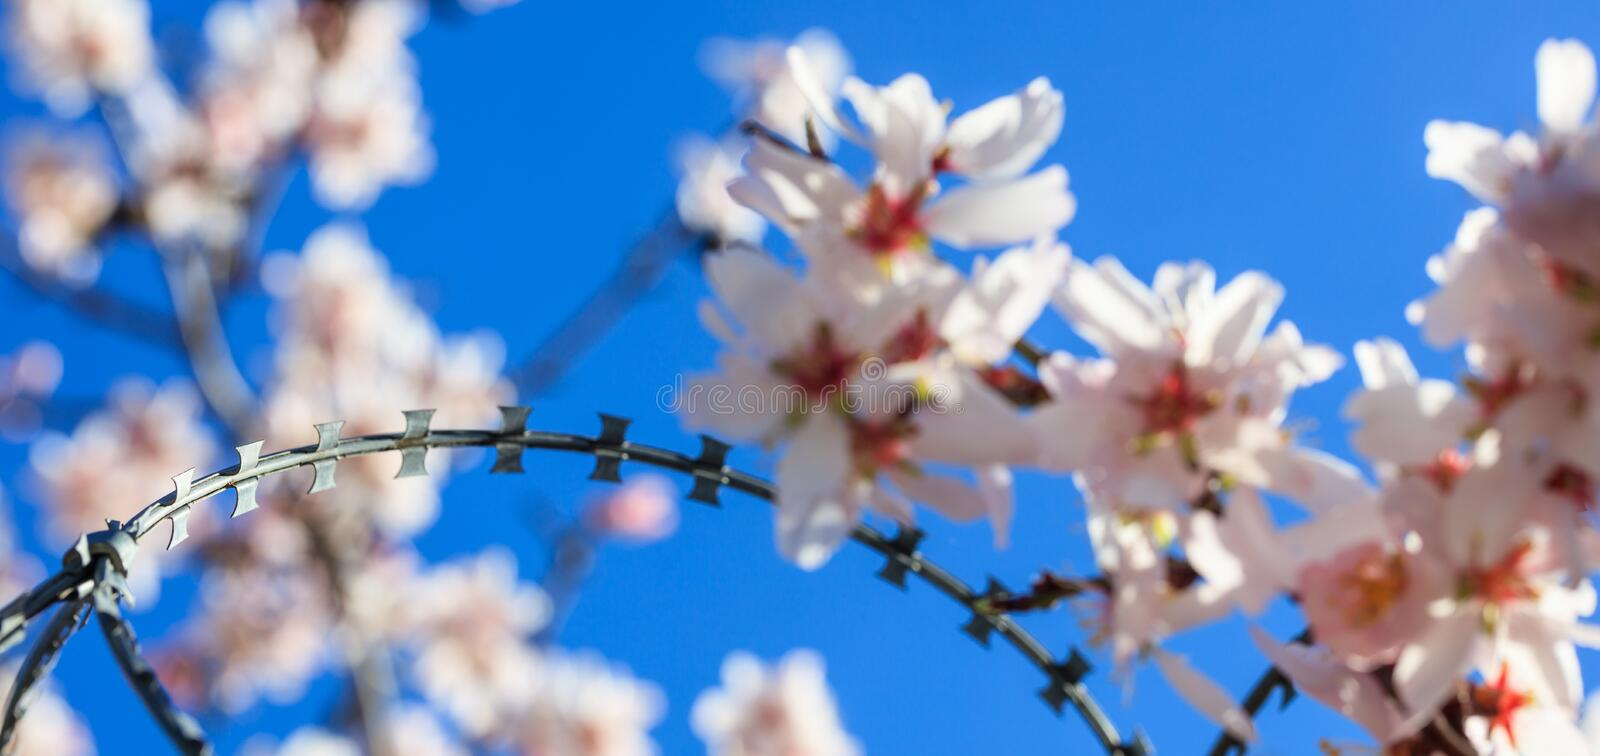 Freedom concept. Wire barbed fence and blur almond tree blossoms on blue sky background royalty free stock photo